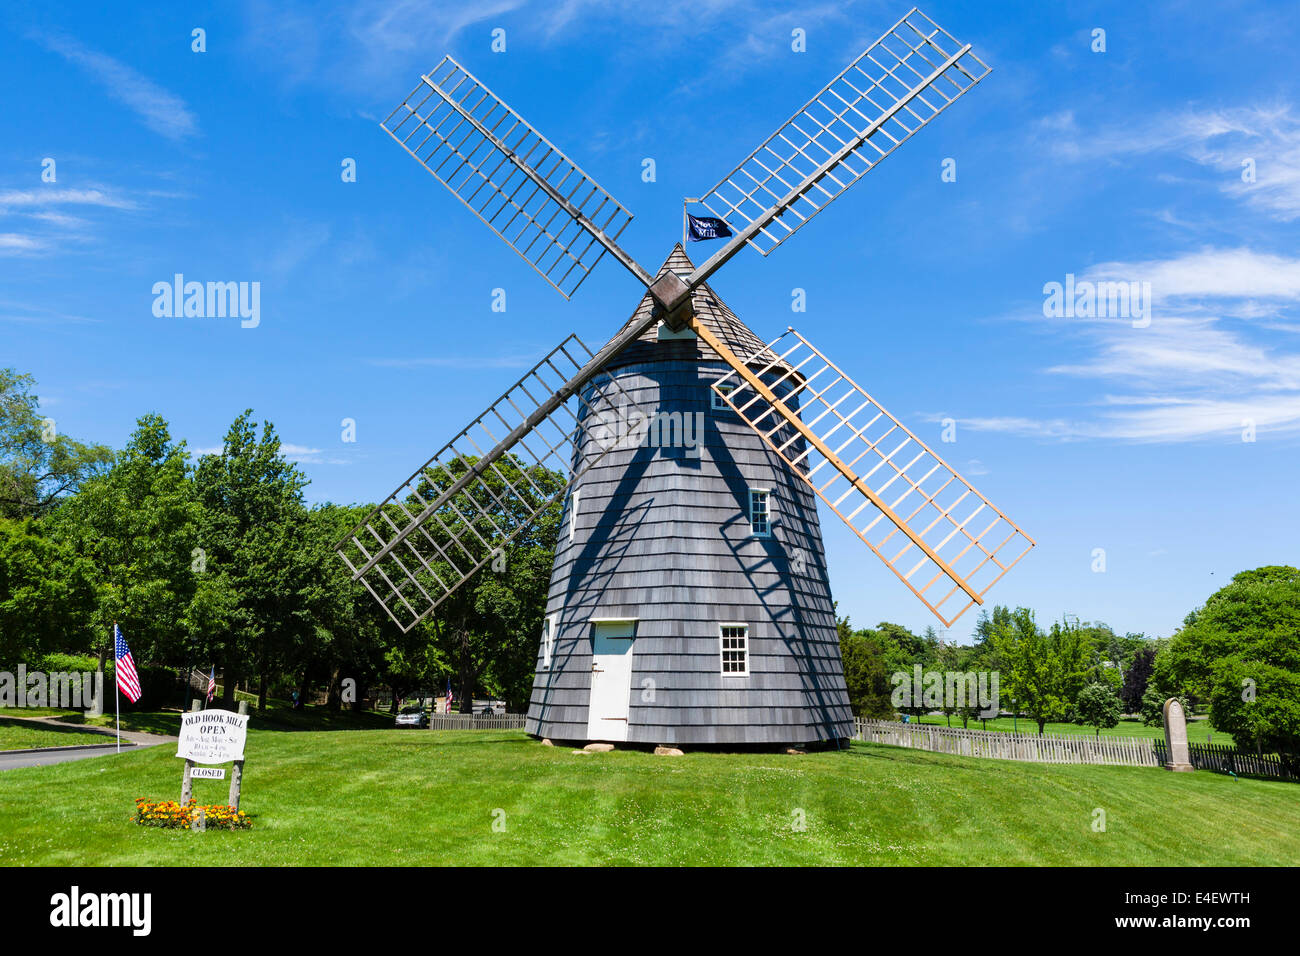 The Old Hook Windmill in the village of East Hampton, Suffolk County, Long Island , NY, USA - Stock Image